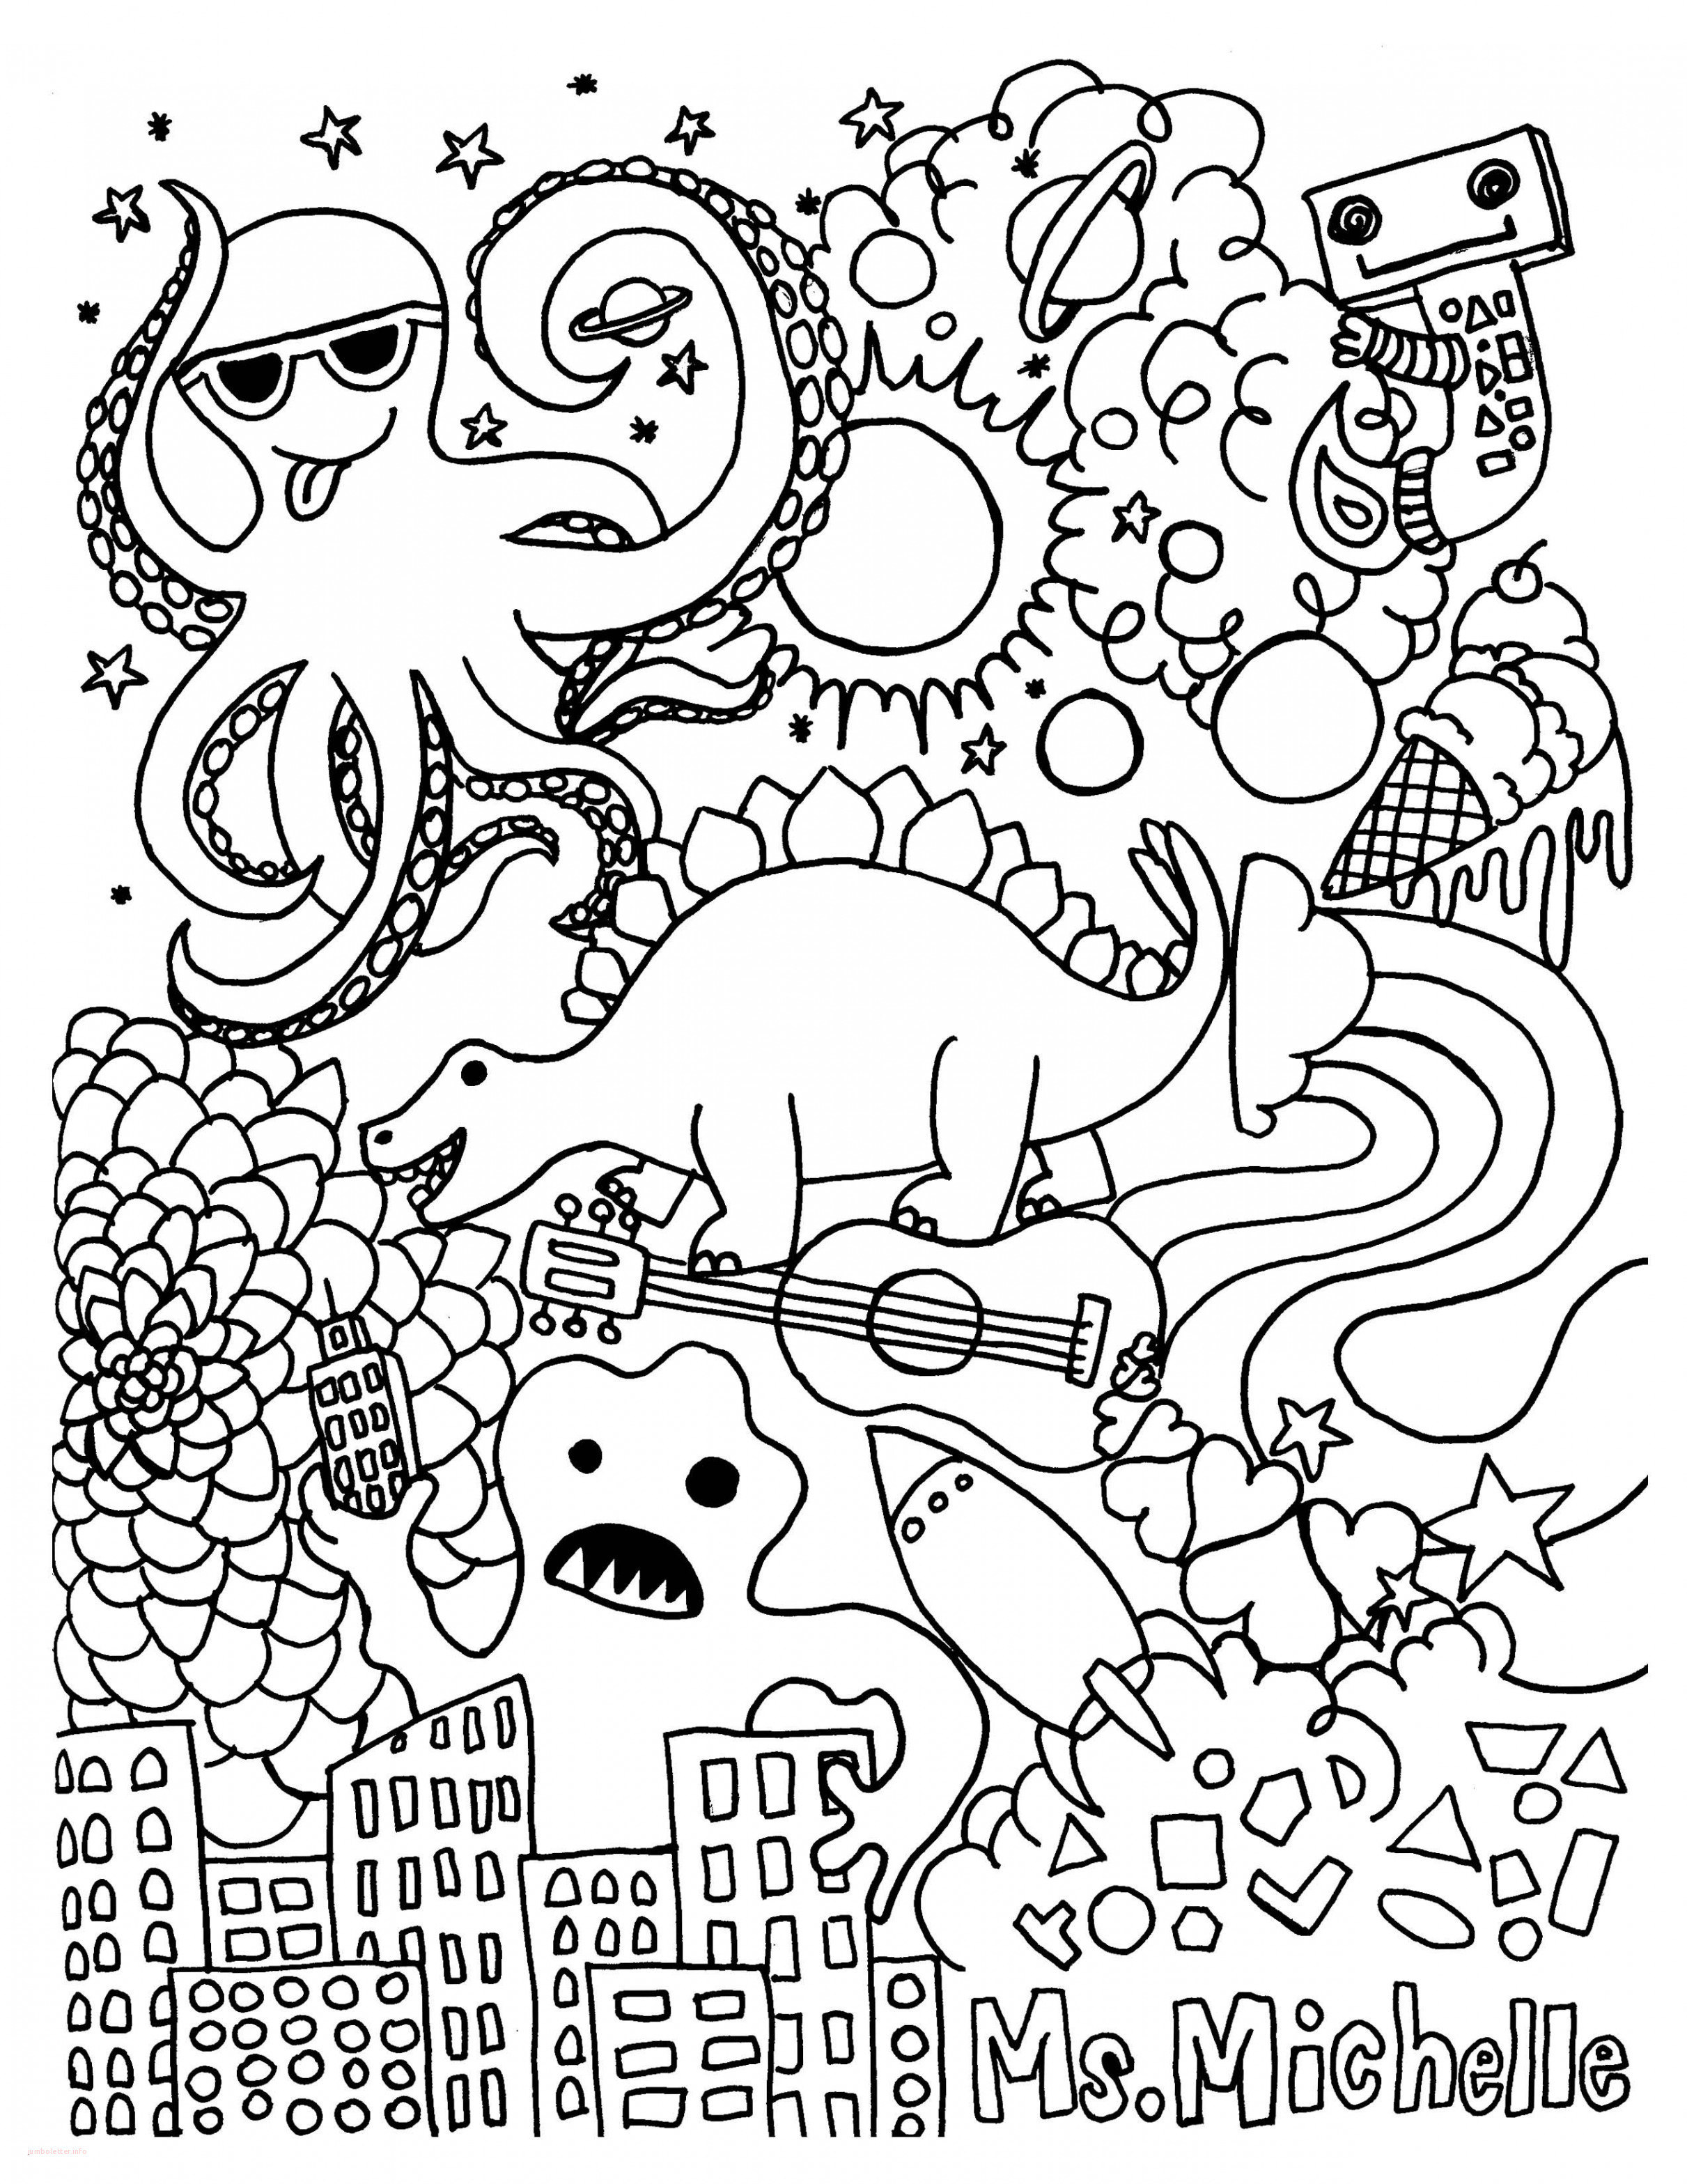 Advanced Animal Coloring Pages  Printable 4k - Free For Children